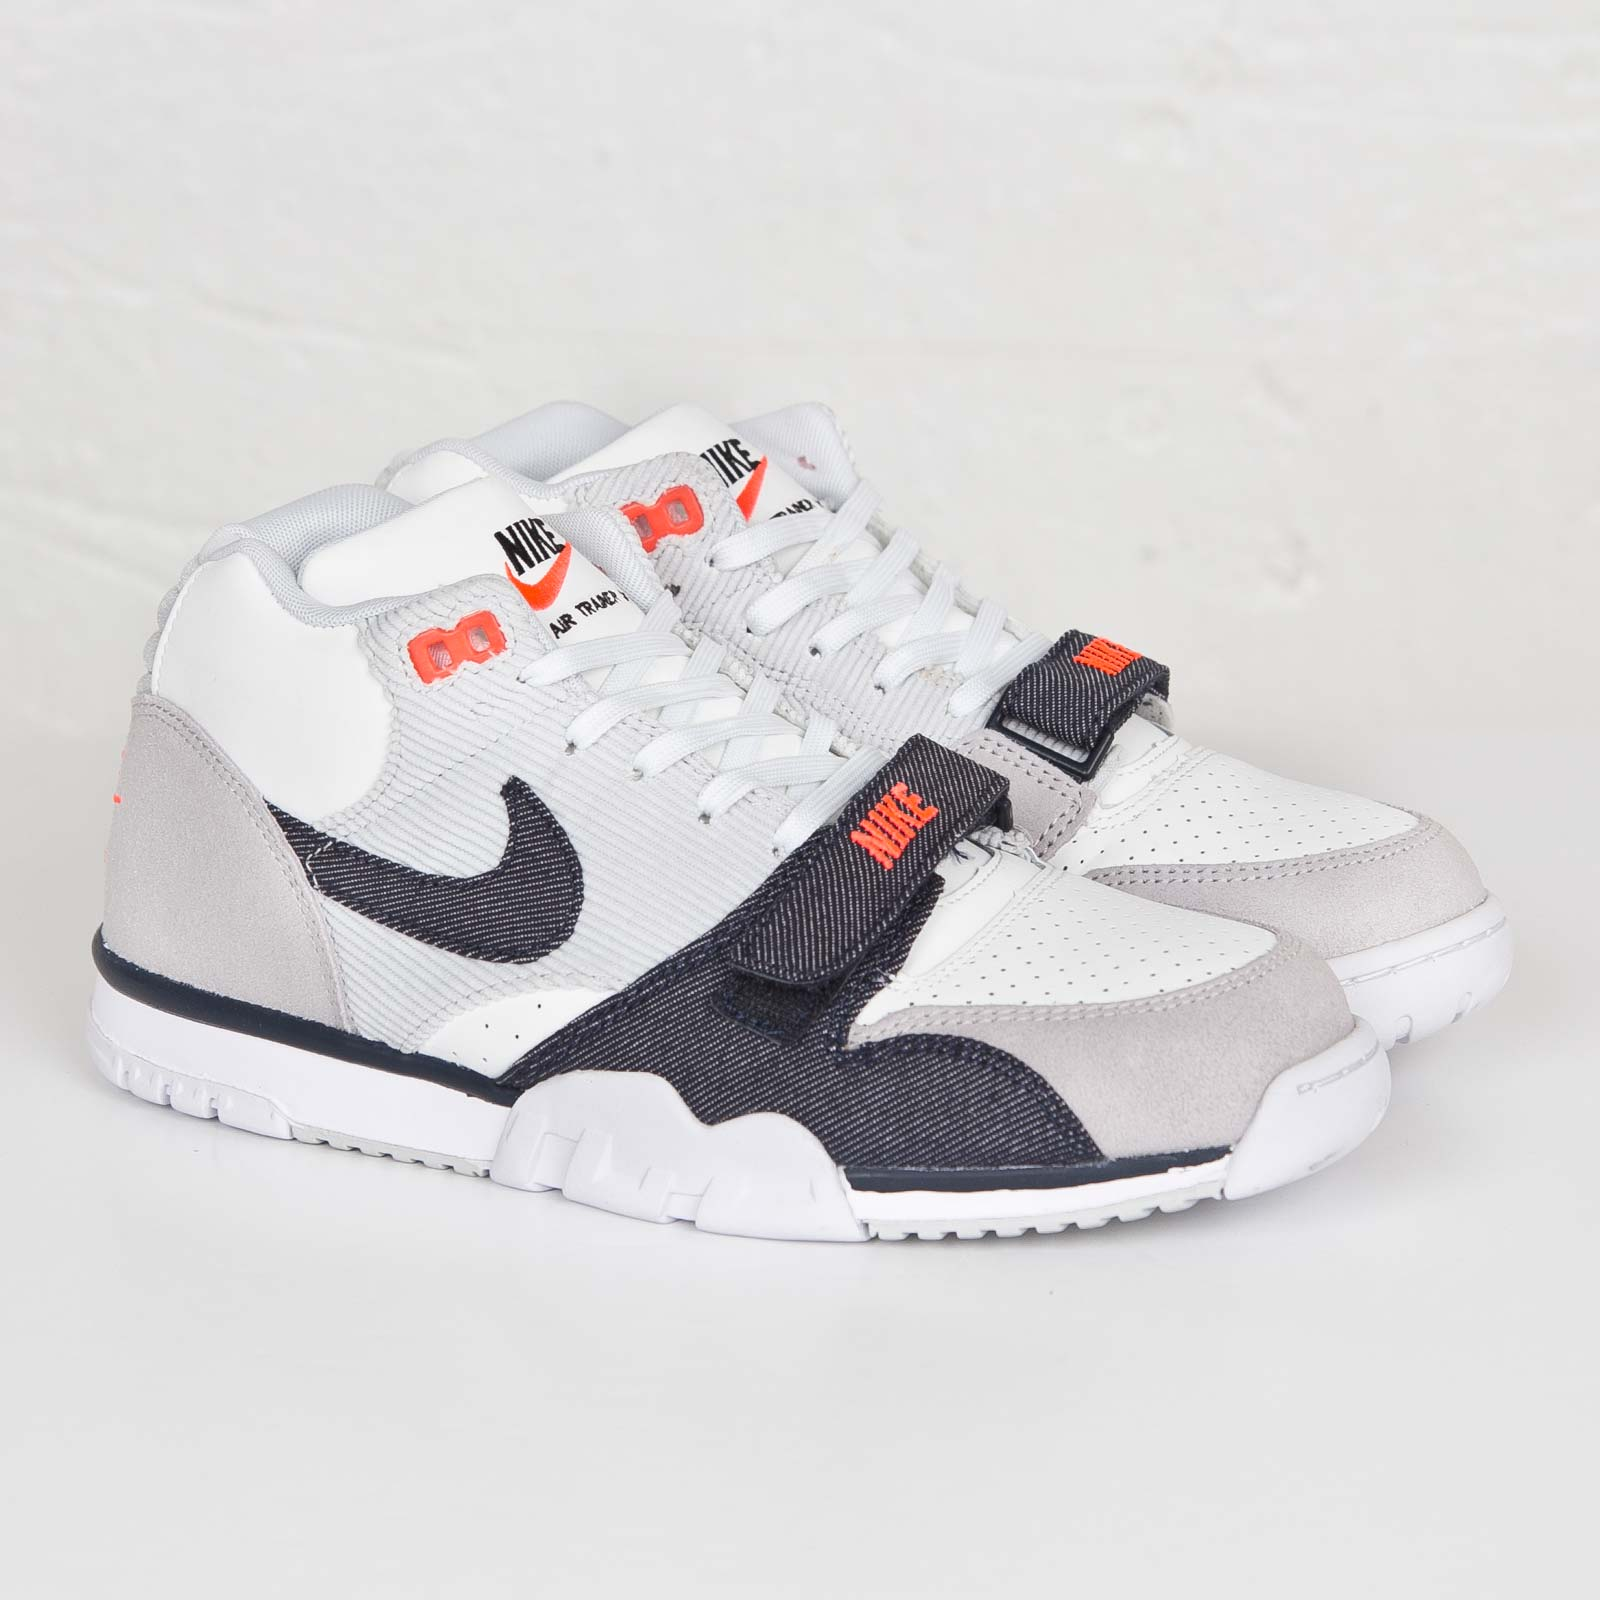 new style c91c0 32583 premium selection bdbcc 62837 Z2179 - Fragment Design x NikeCourt Air  Trainer 1 Mitt